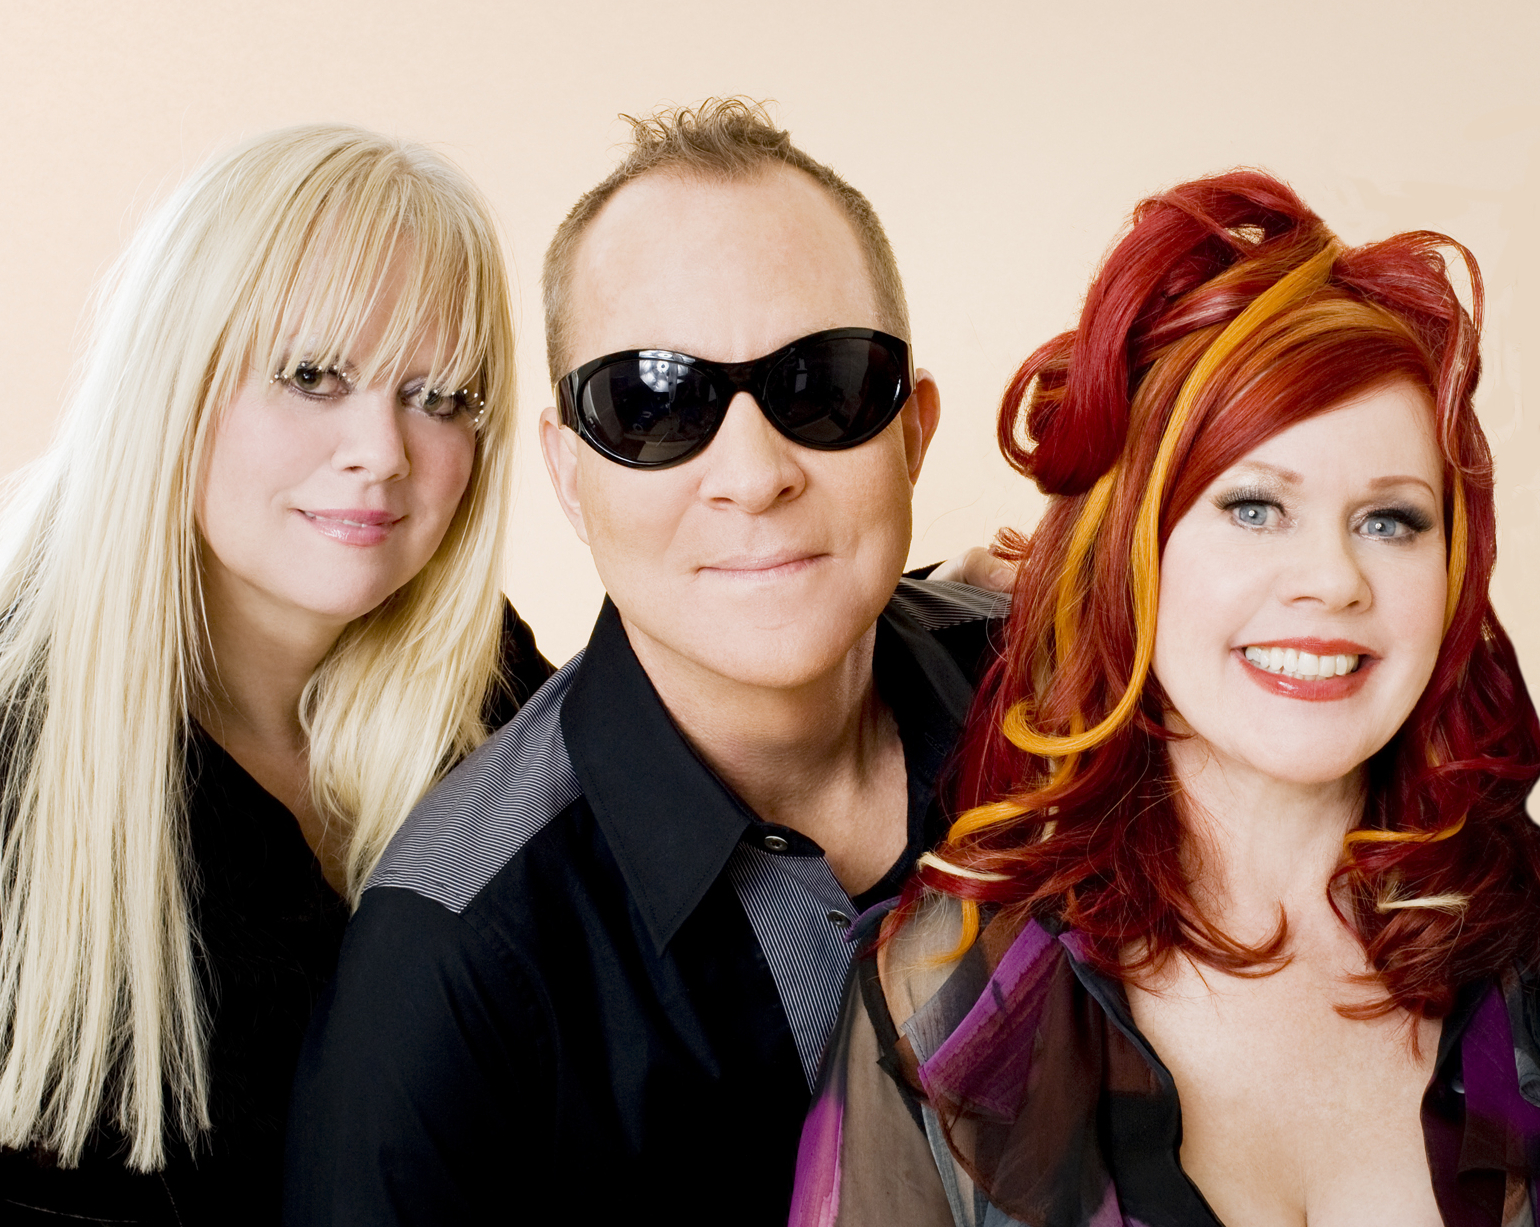 The B-52s Tour Promo Photo 2 (credit Pieter M. Van Hattem)